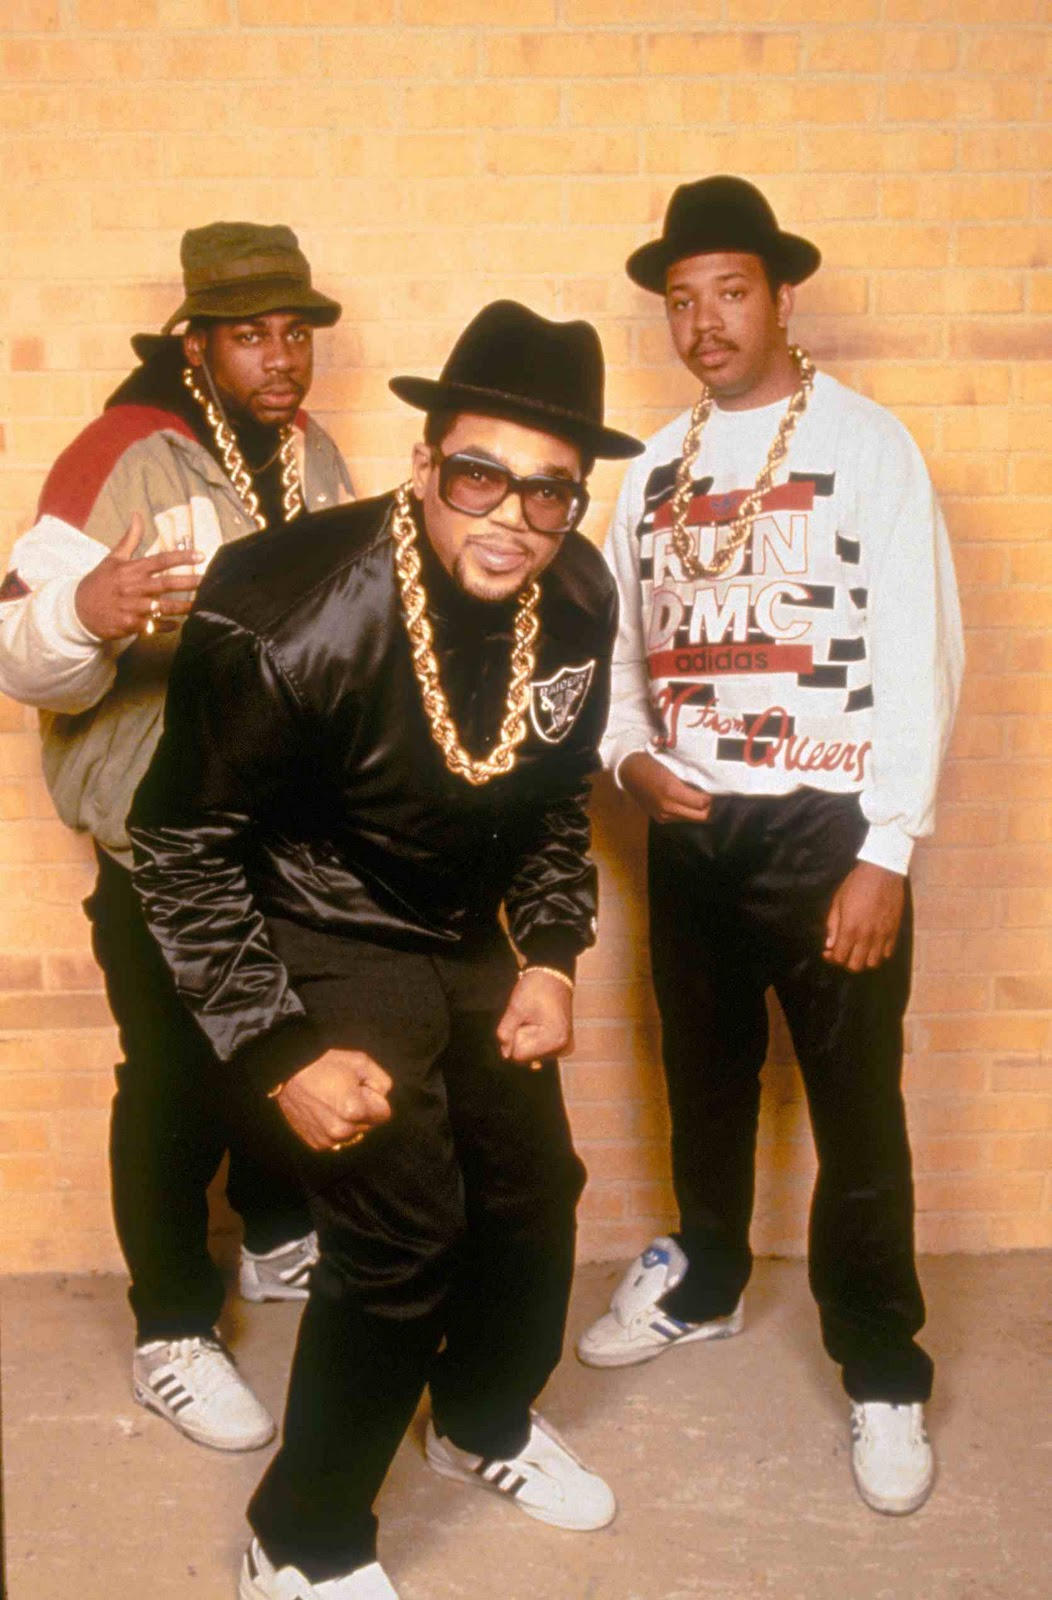 Afroccentric fashion blogs run dmc s influence on adidas